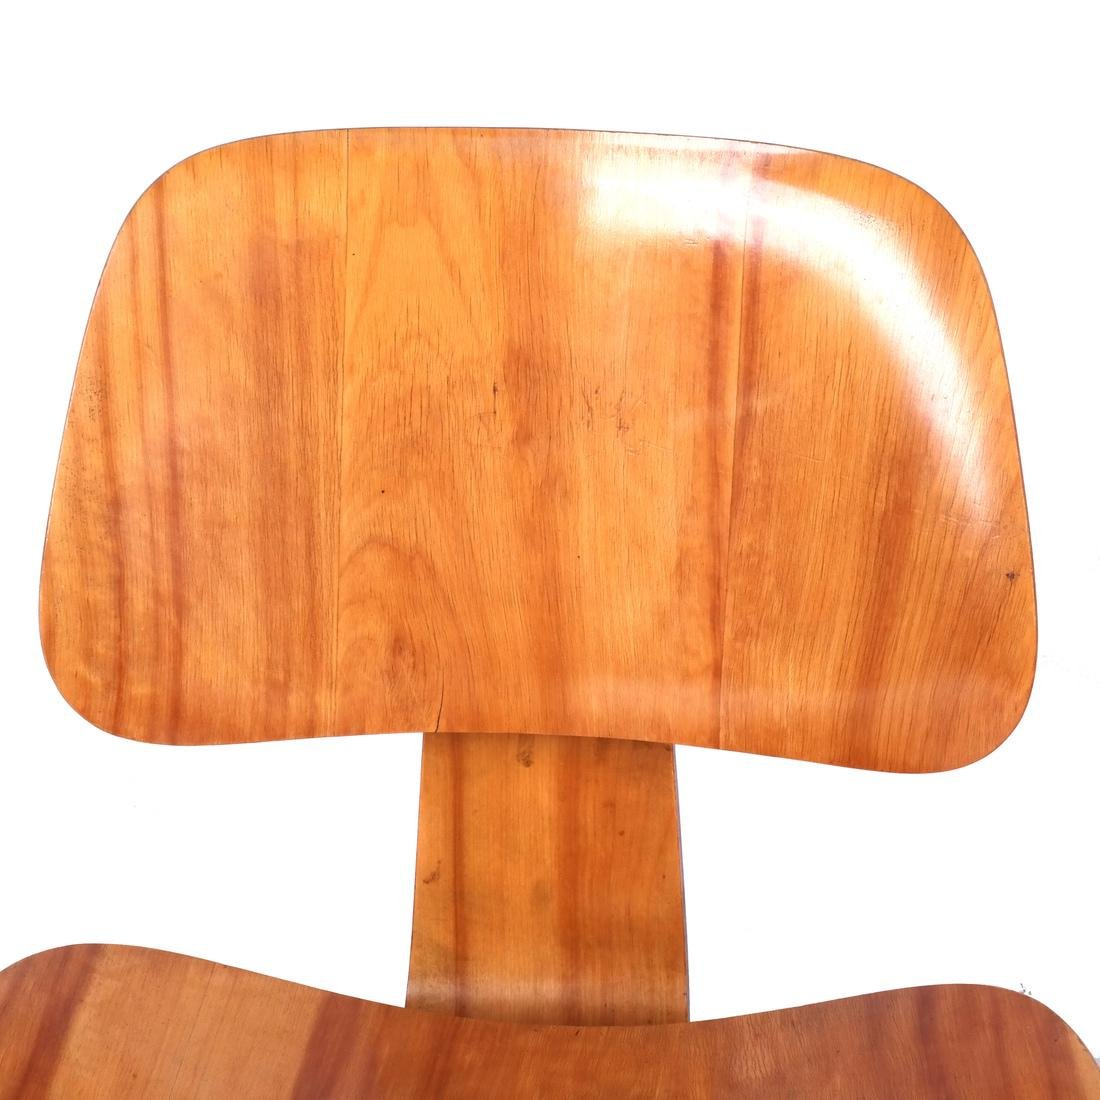 Charles Eames for Herman Miller DCW Chairs - 2